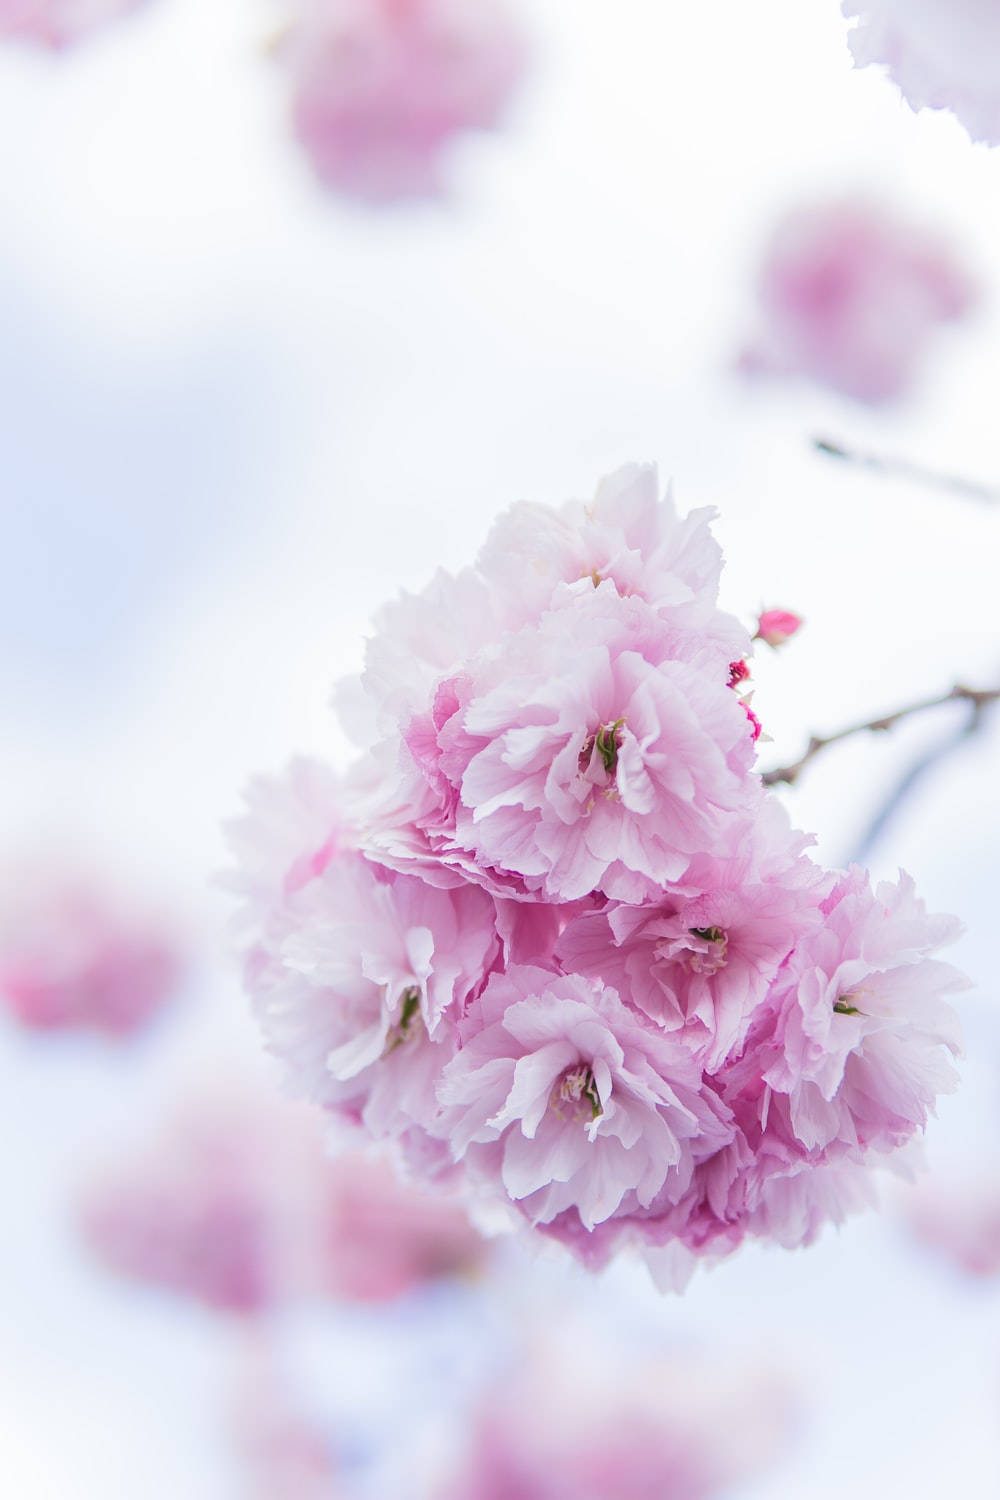 view of pink cherry blossoms